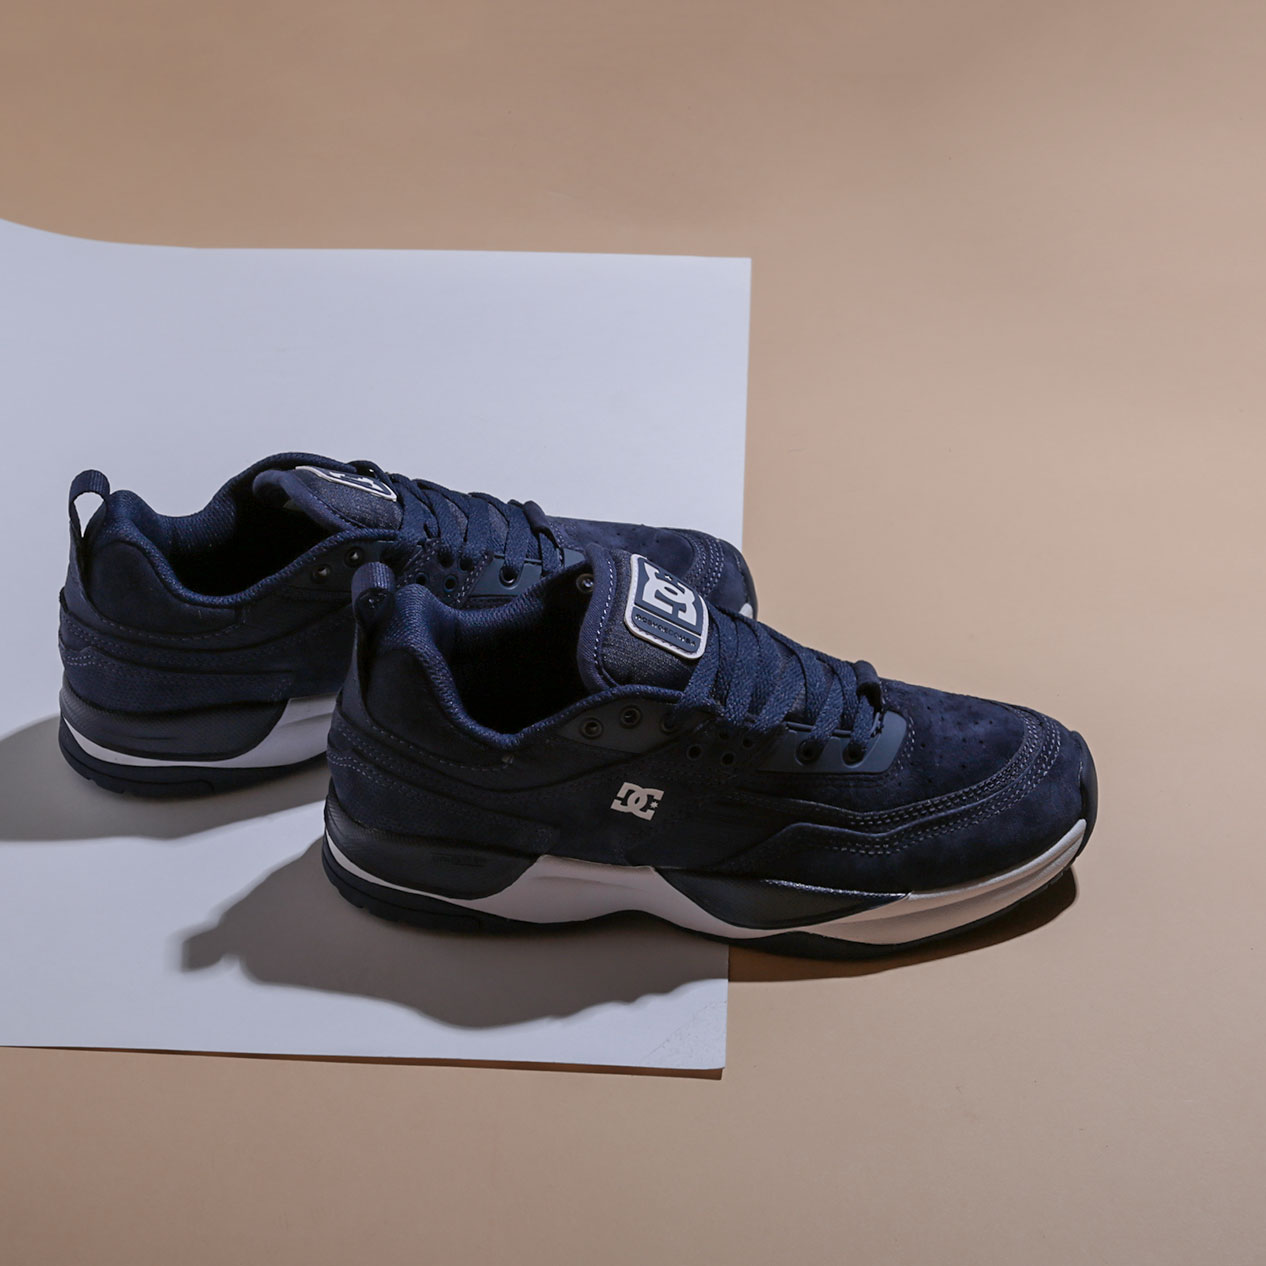 Кроссовки DC SHOES E.Tribeka ADYS700173-nvy